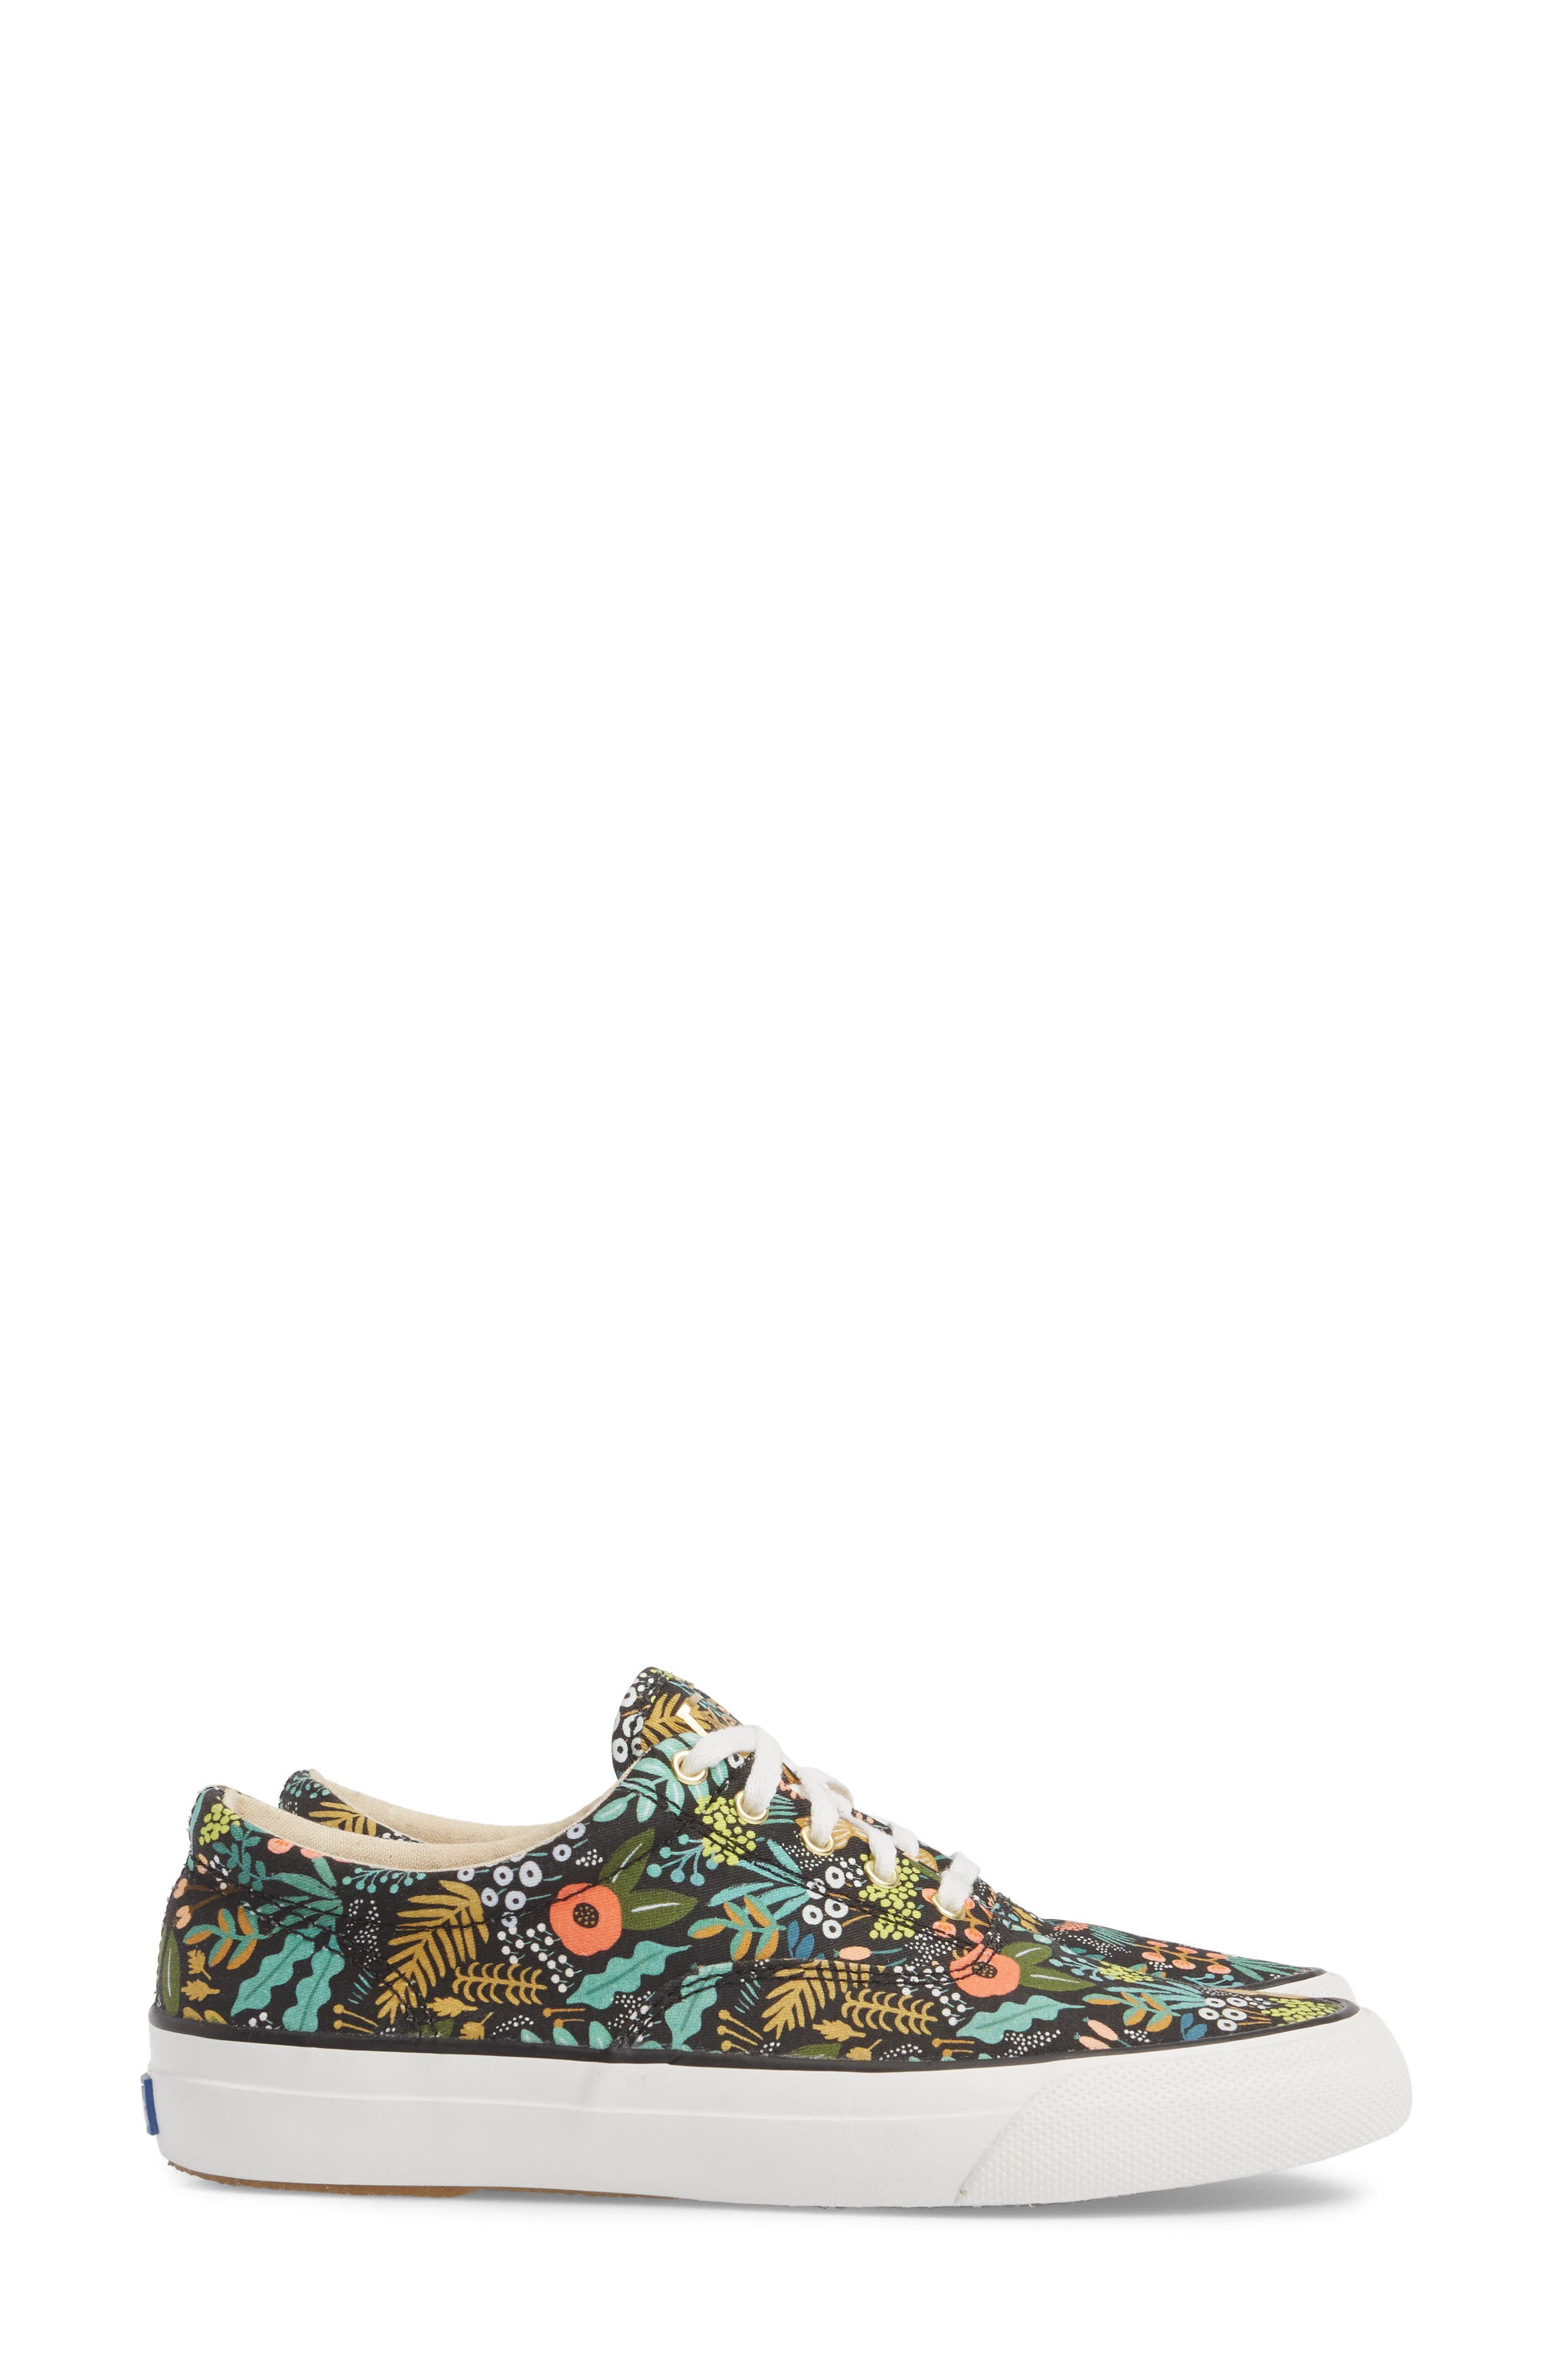 x Rifle Paper Co. Anchor Lively Floral Slip-On Sneaker,                             Alternate thumbnail 4, color,                             BLACK